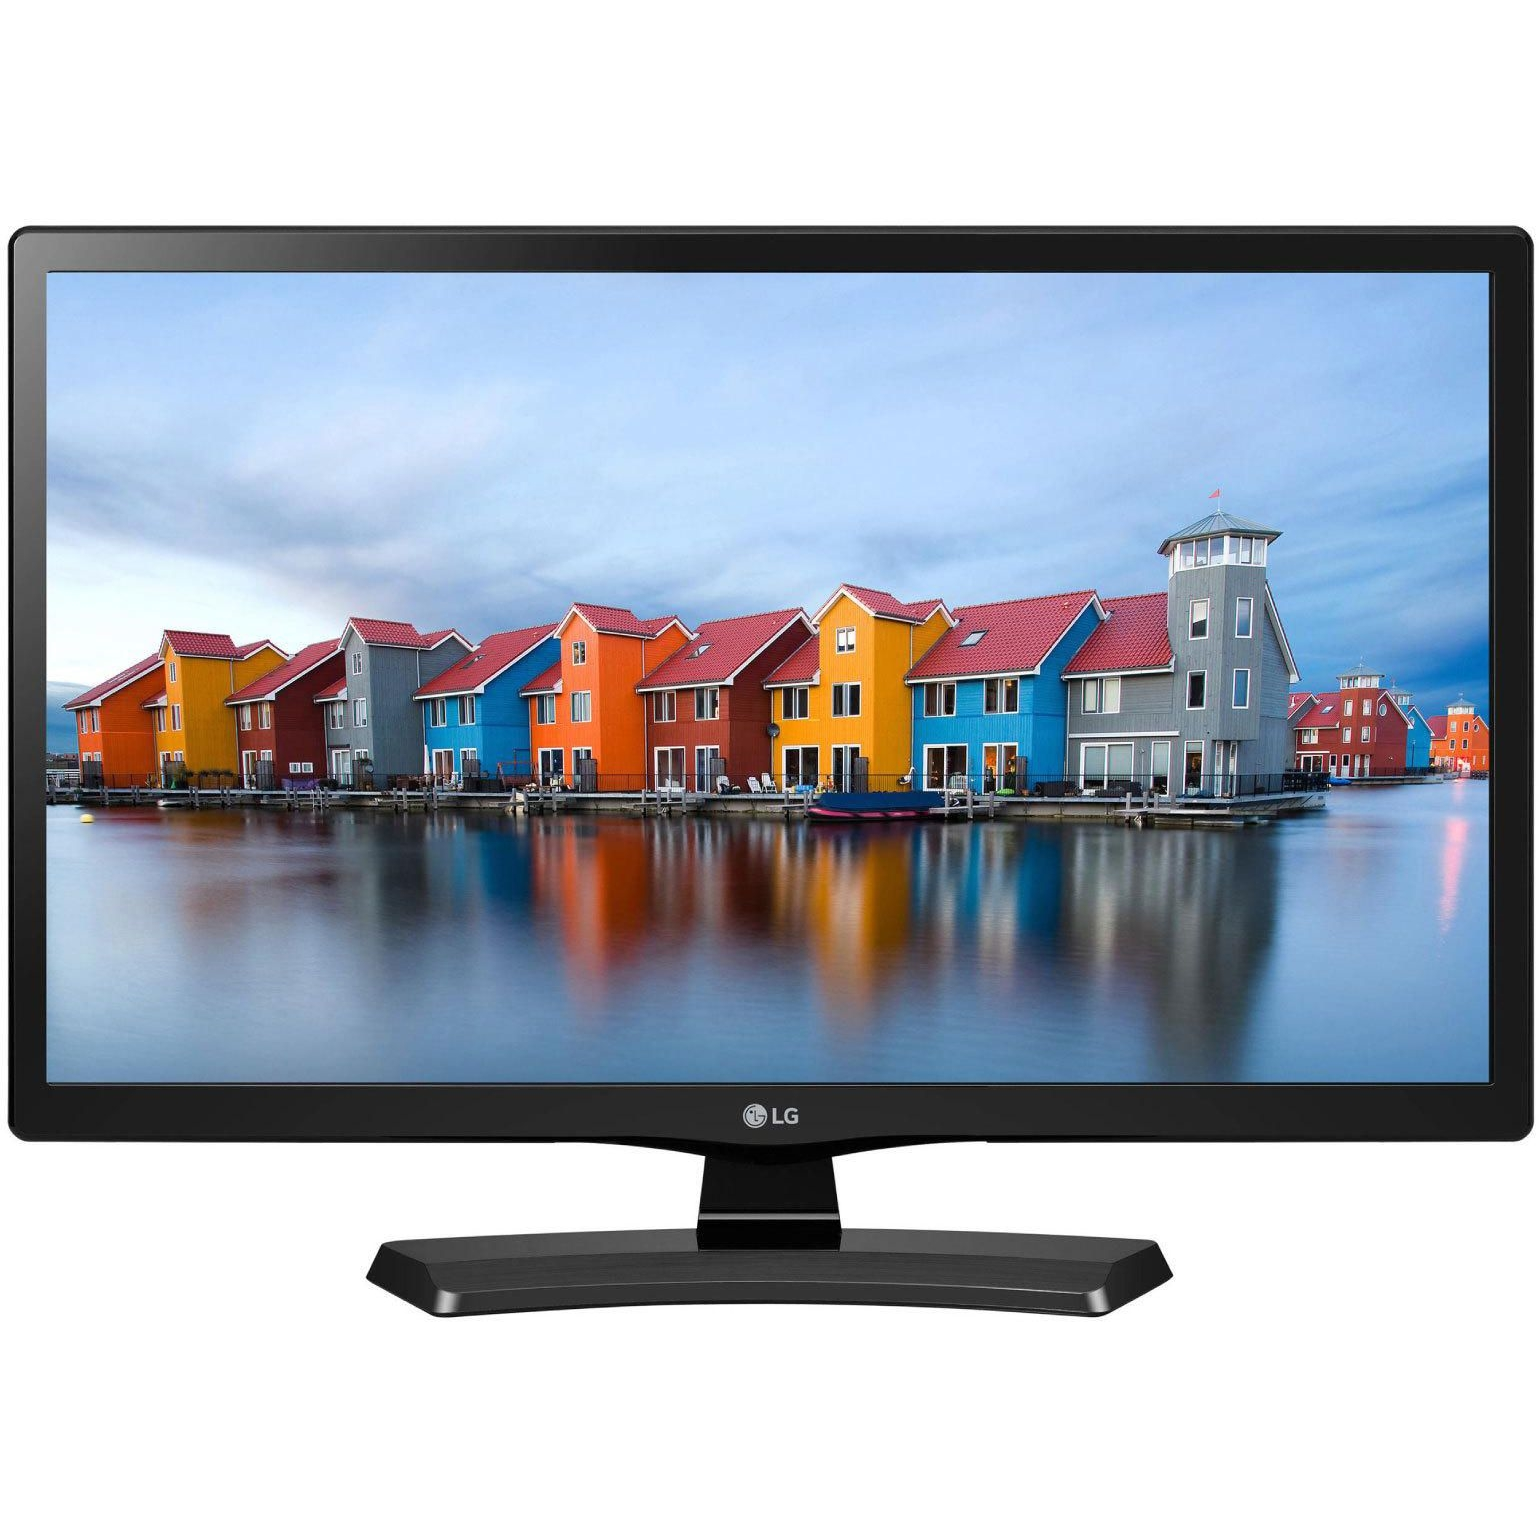 "LG 28MN49HM-PZ 28"" 5MS 1366x768 HDMI SPEAKER LED TV-MONITOR"